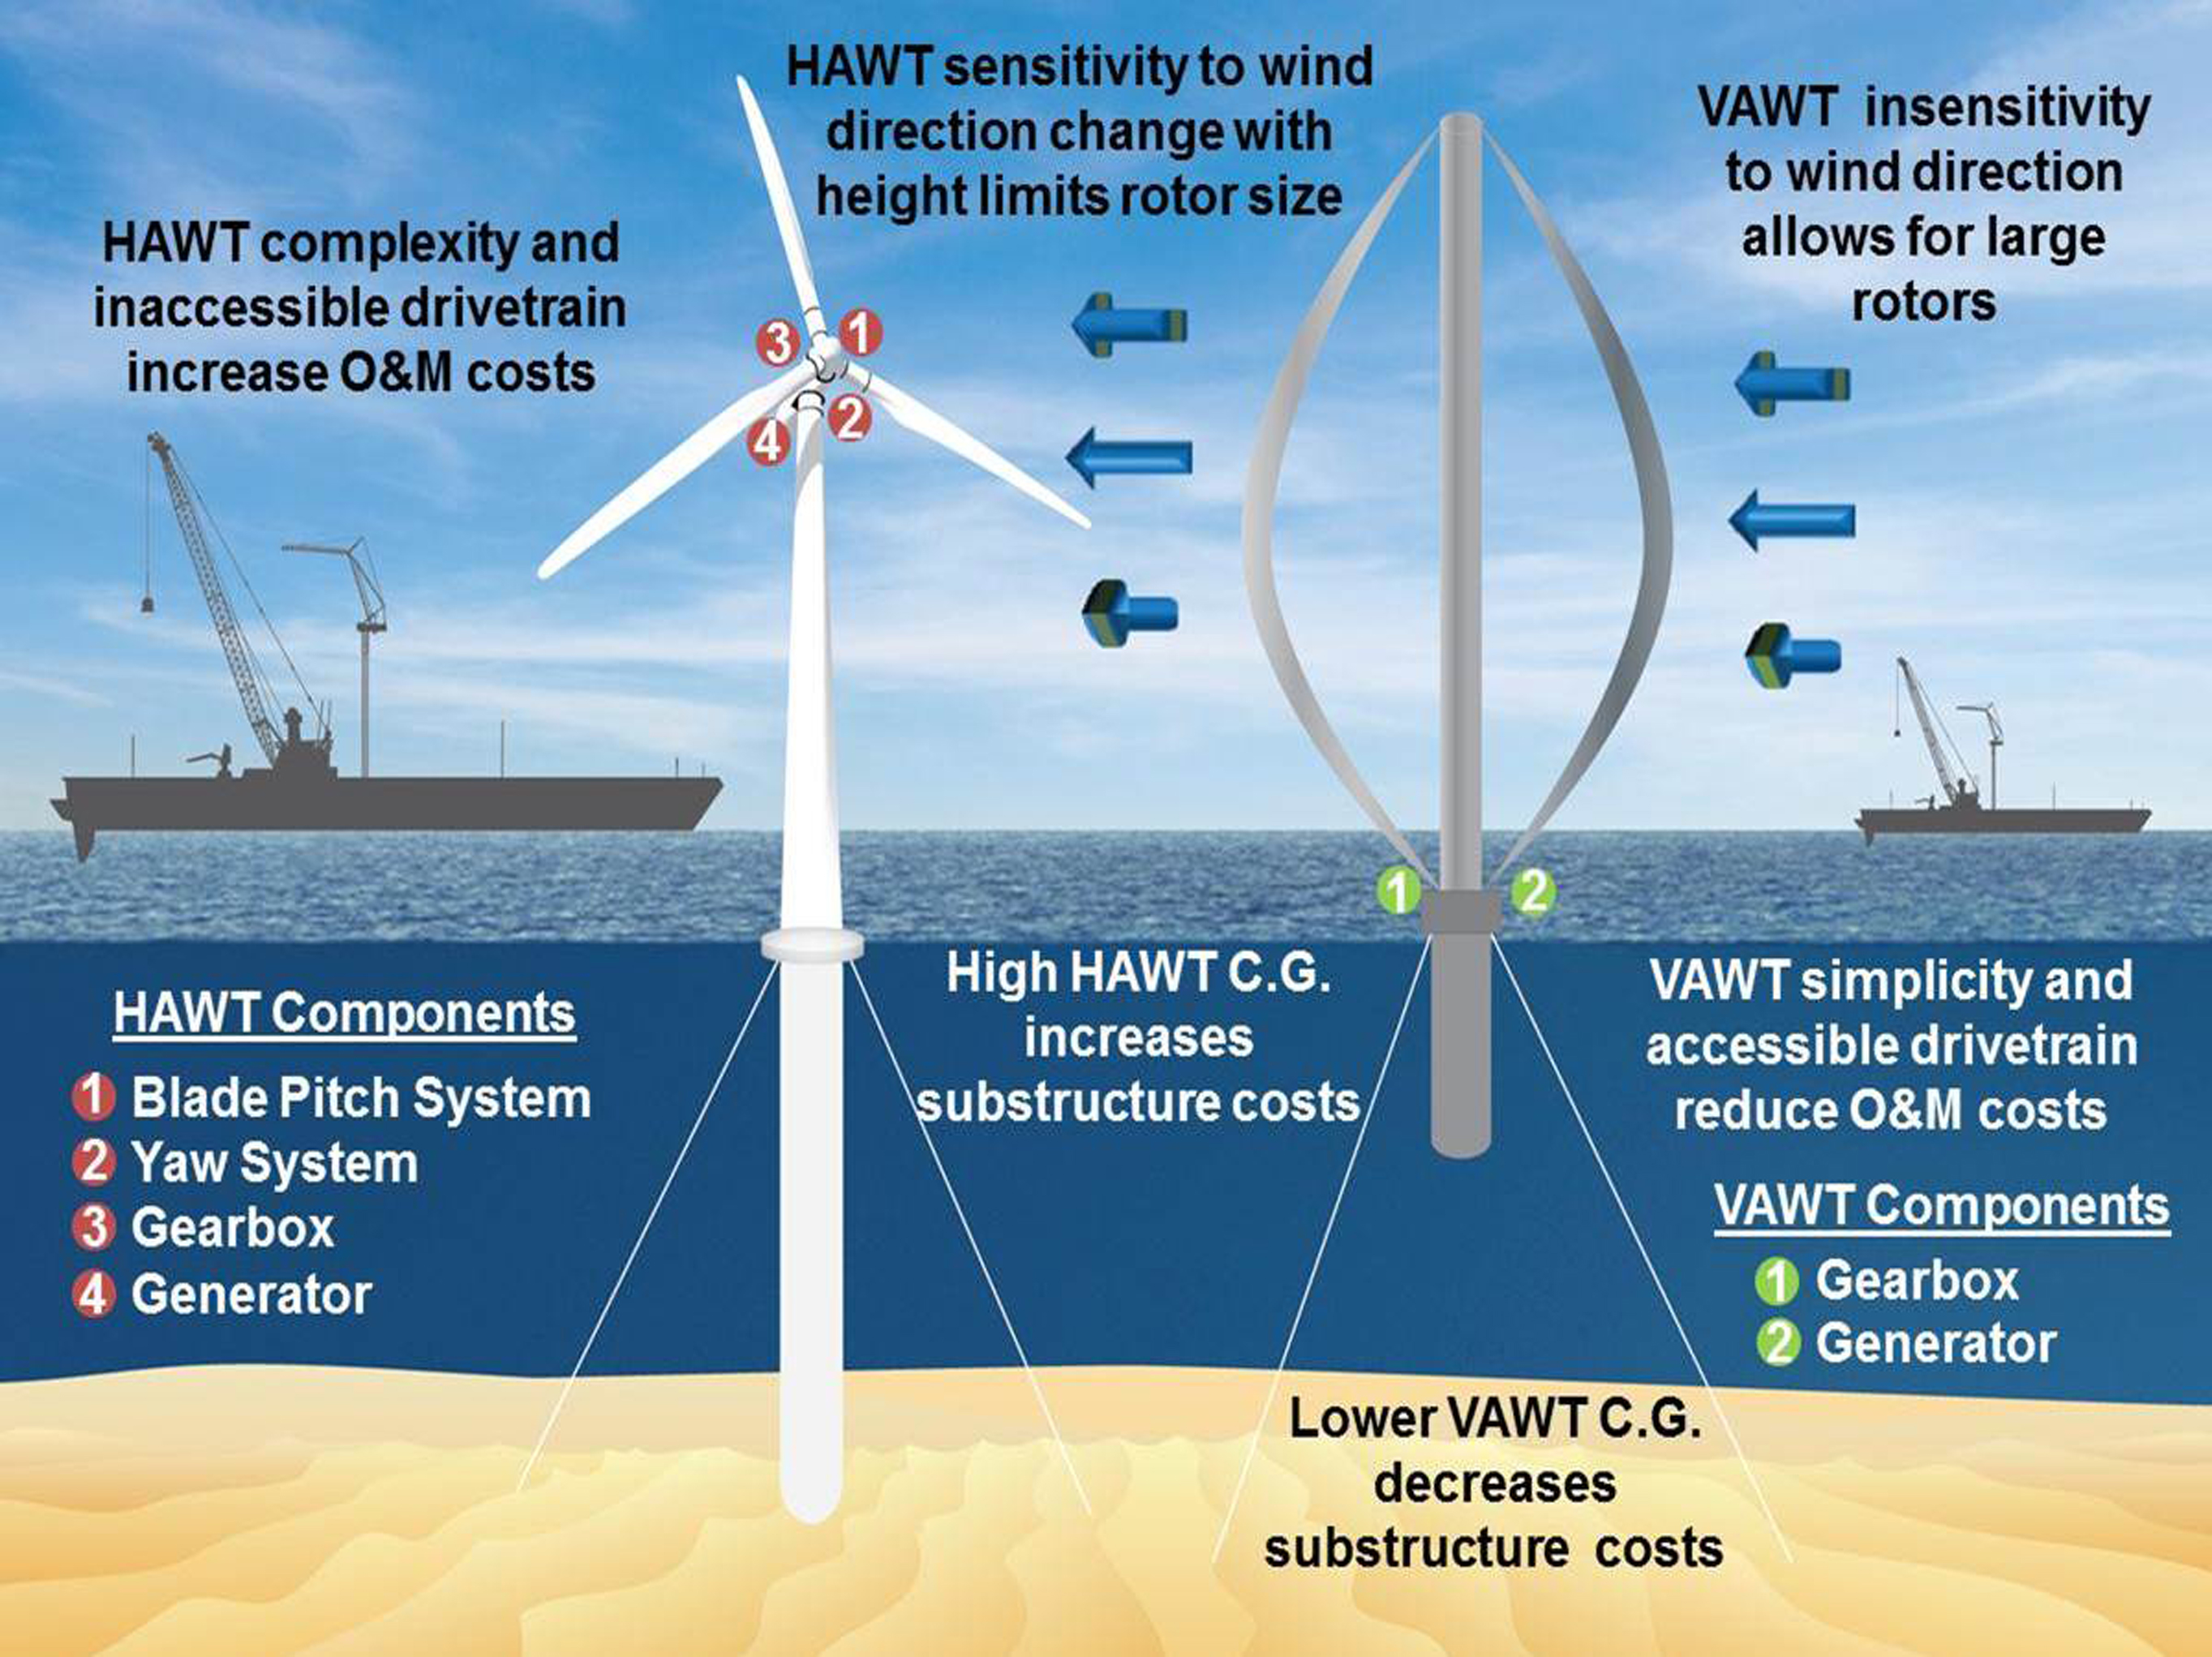 Home Hydrogen Generator >> Offshore use of vertical-axis wind turbines gets closer look